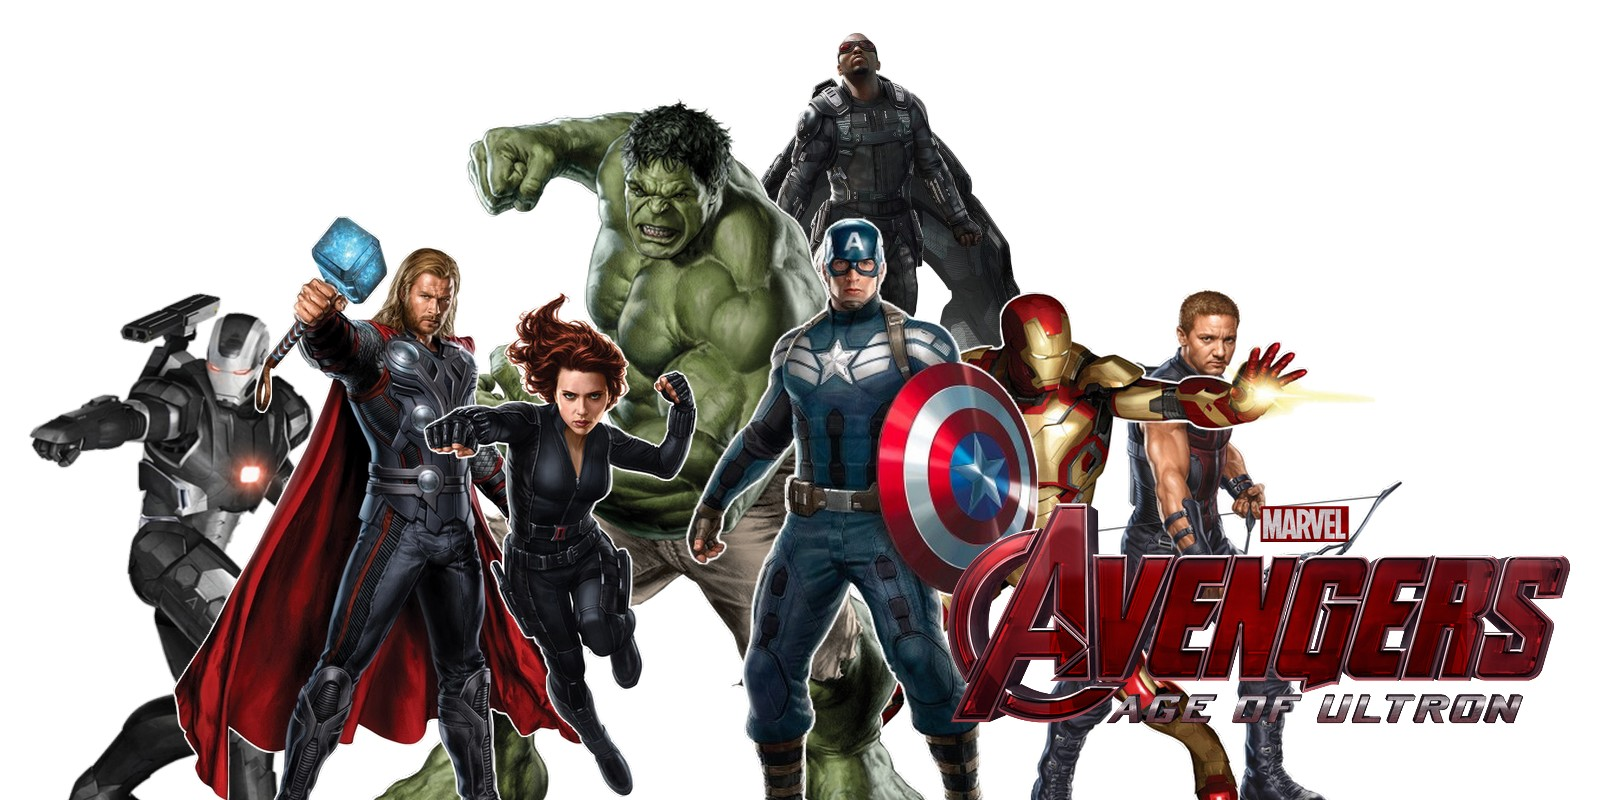 Avengers Age Of Ultron By Iloegbunam On Deviantart: Age Of Ultron By Zedkate On DeviantArt